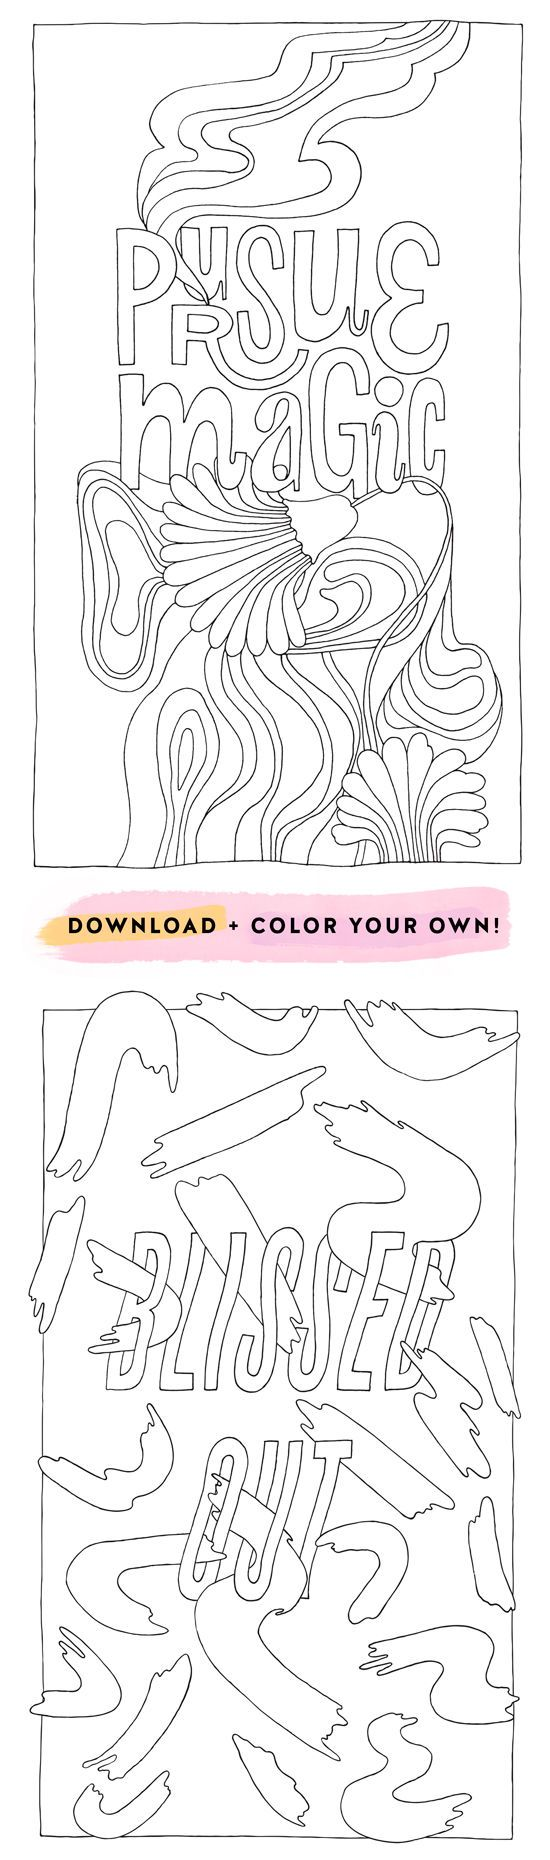 Stress less coloring by the shore - Coloring Posters Pt 1